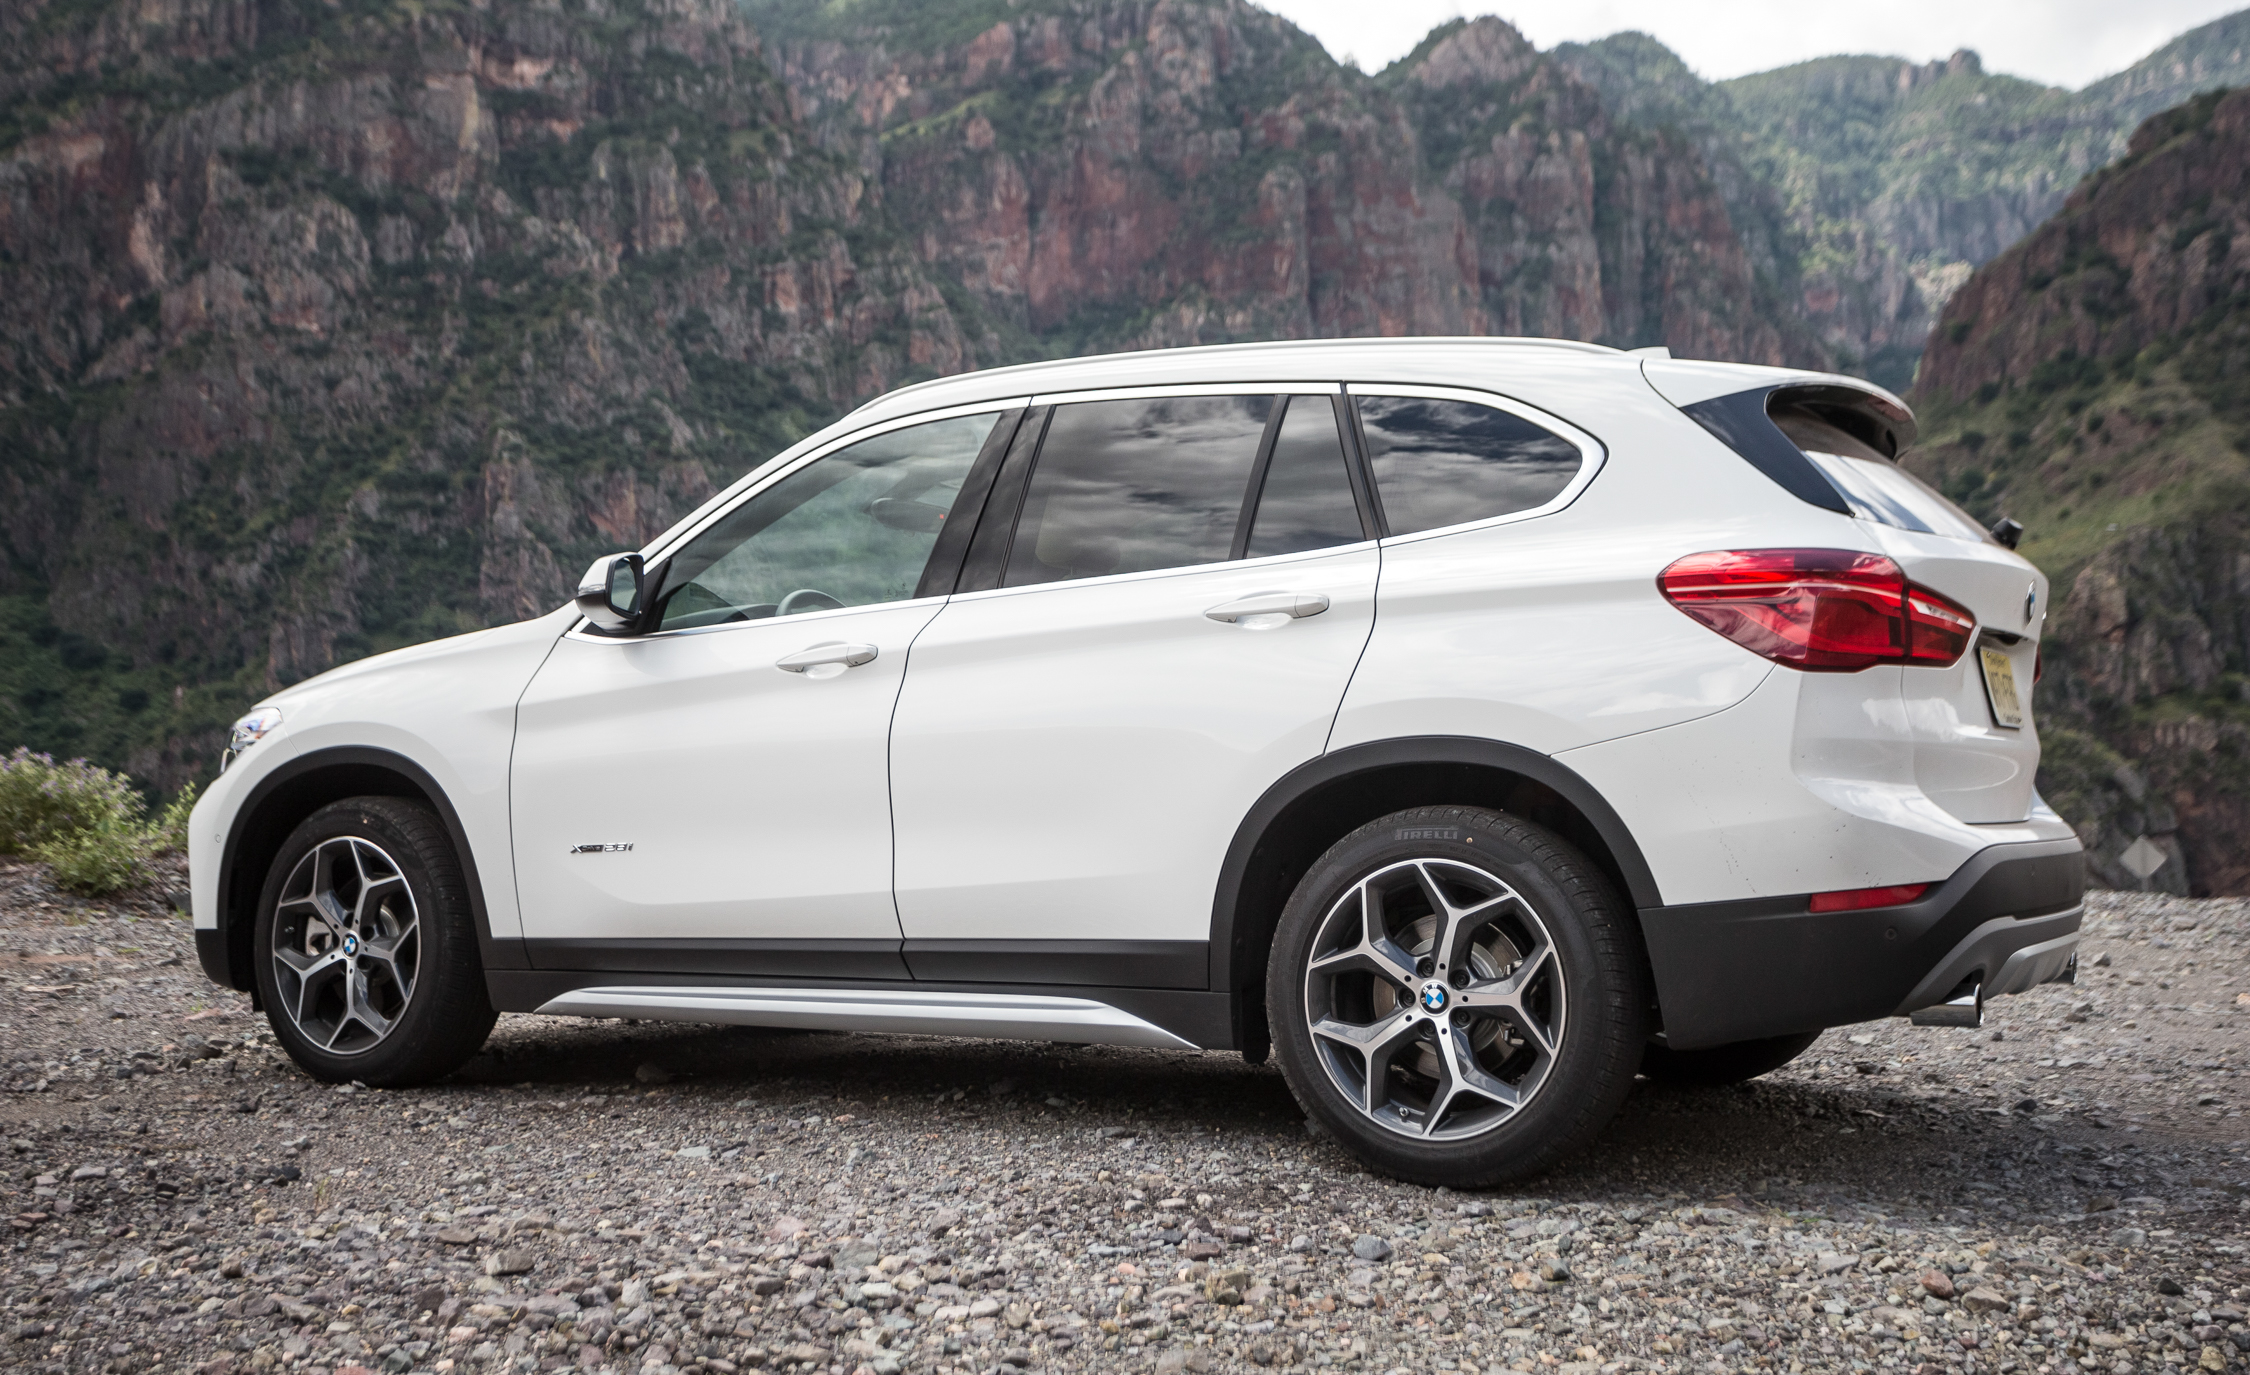 2016 BMW X1 Exterior White Metallic Side (Photo 6 of 36)